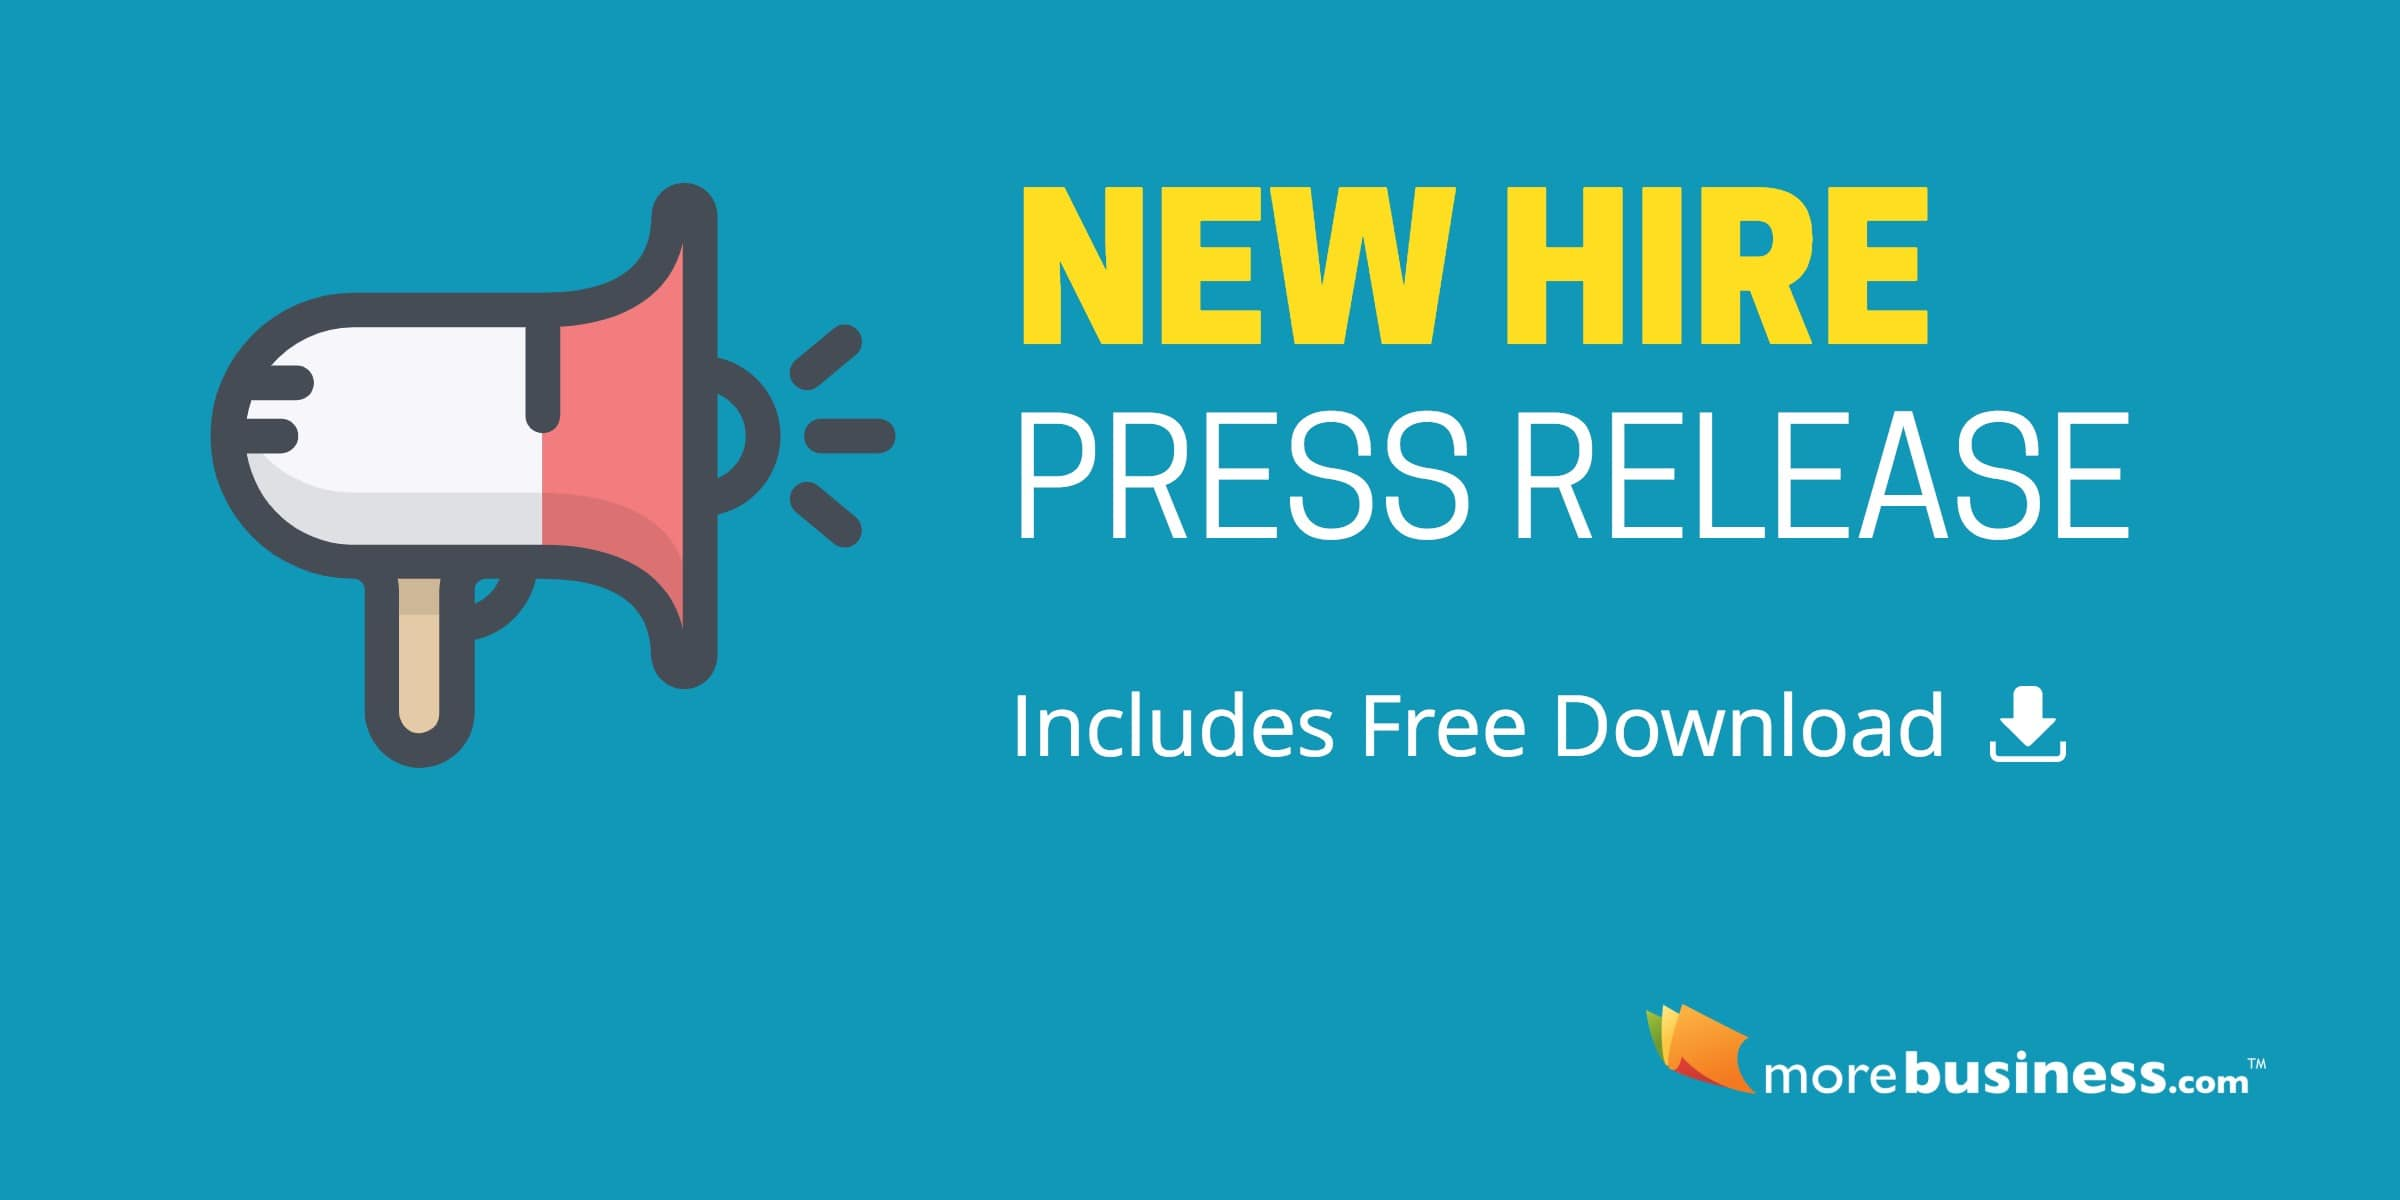 New Hire Press Release - Free Download, Editable Microsoft Word Format